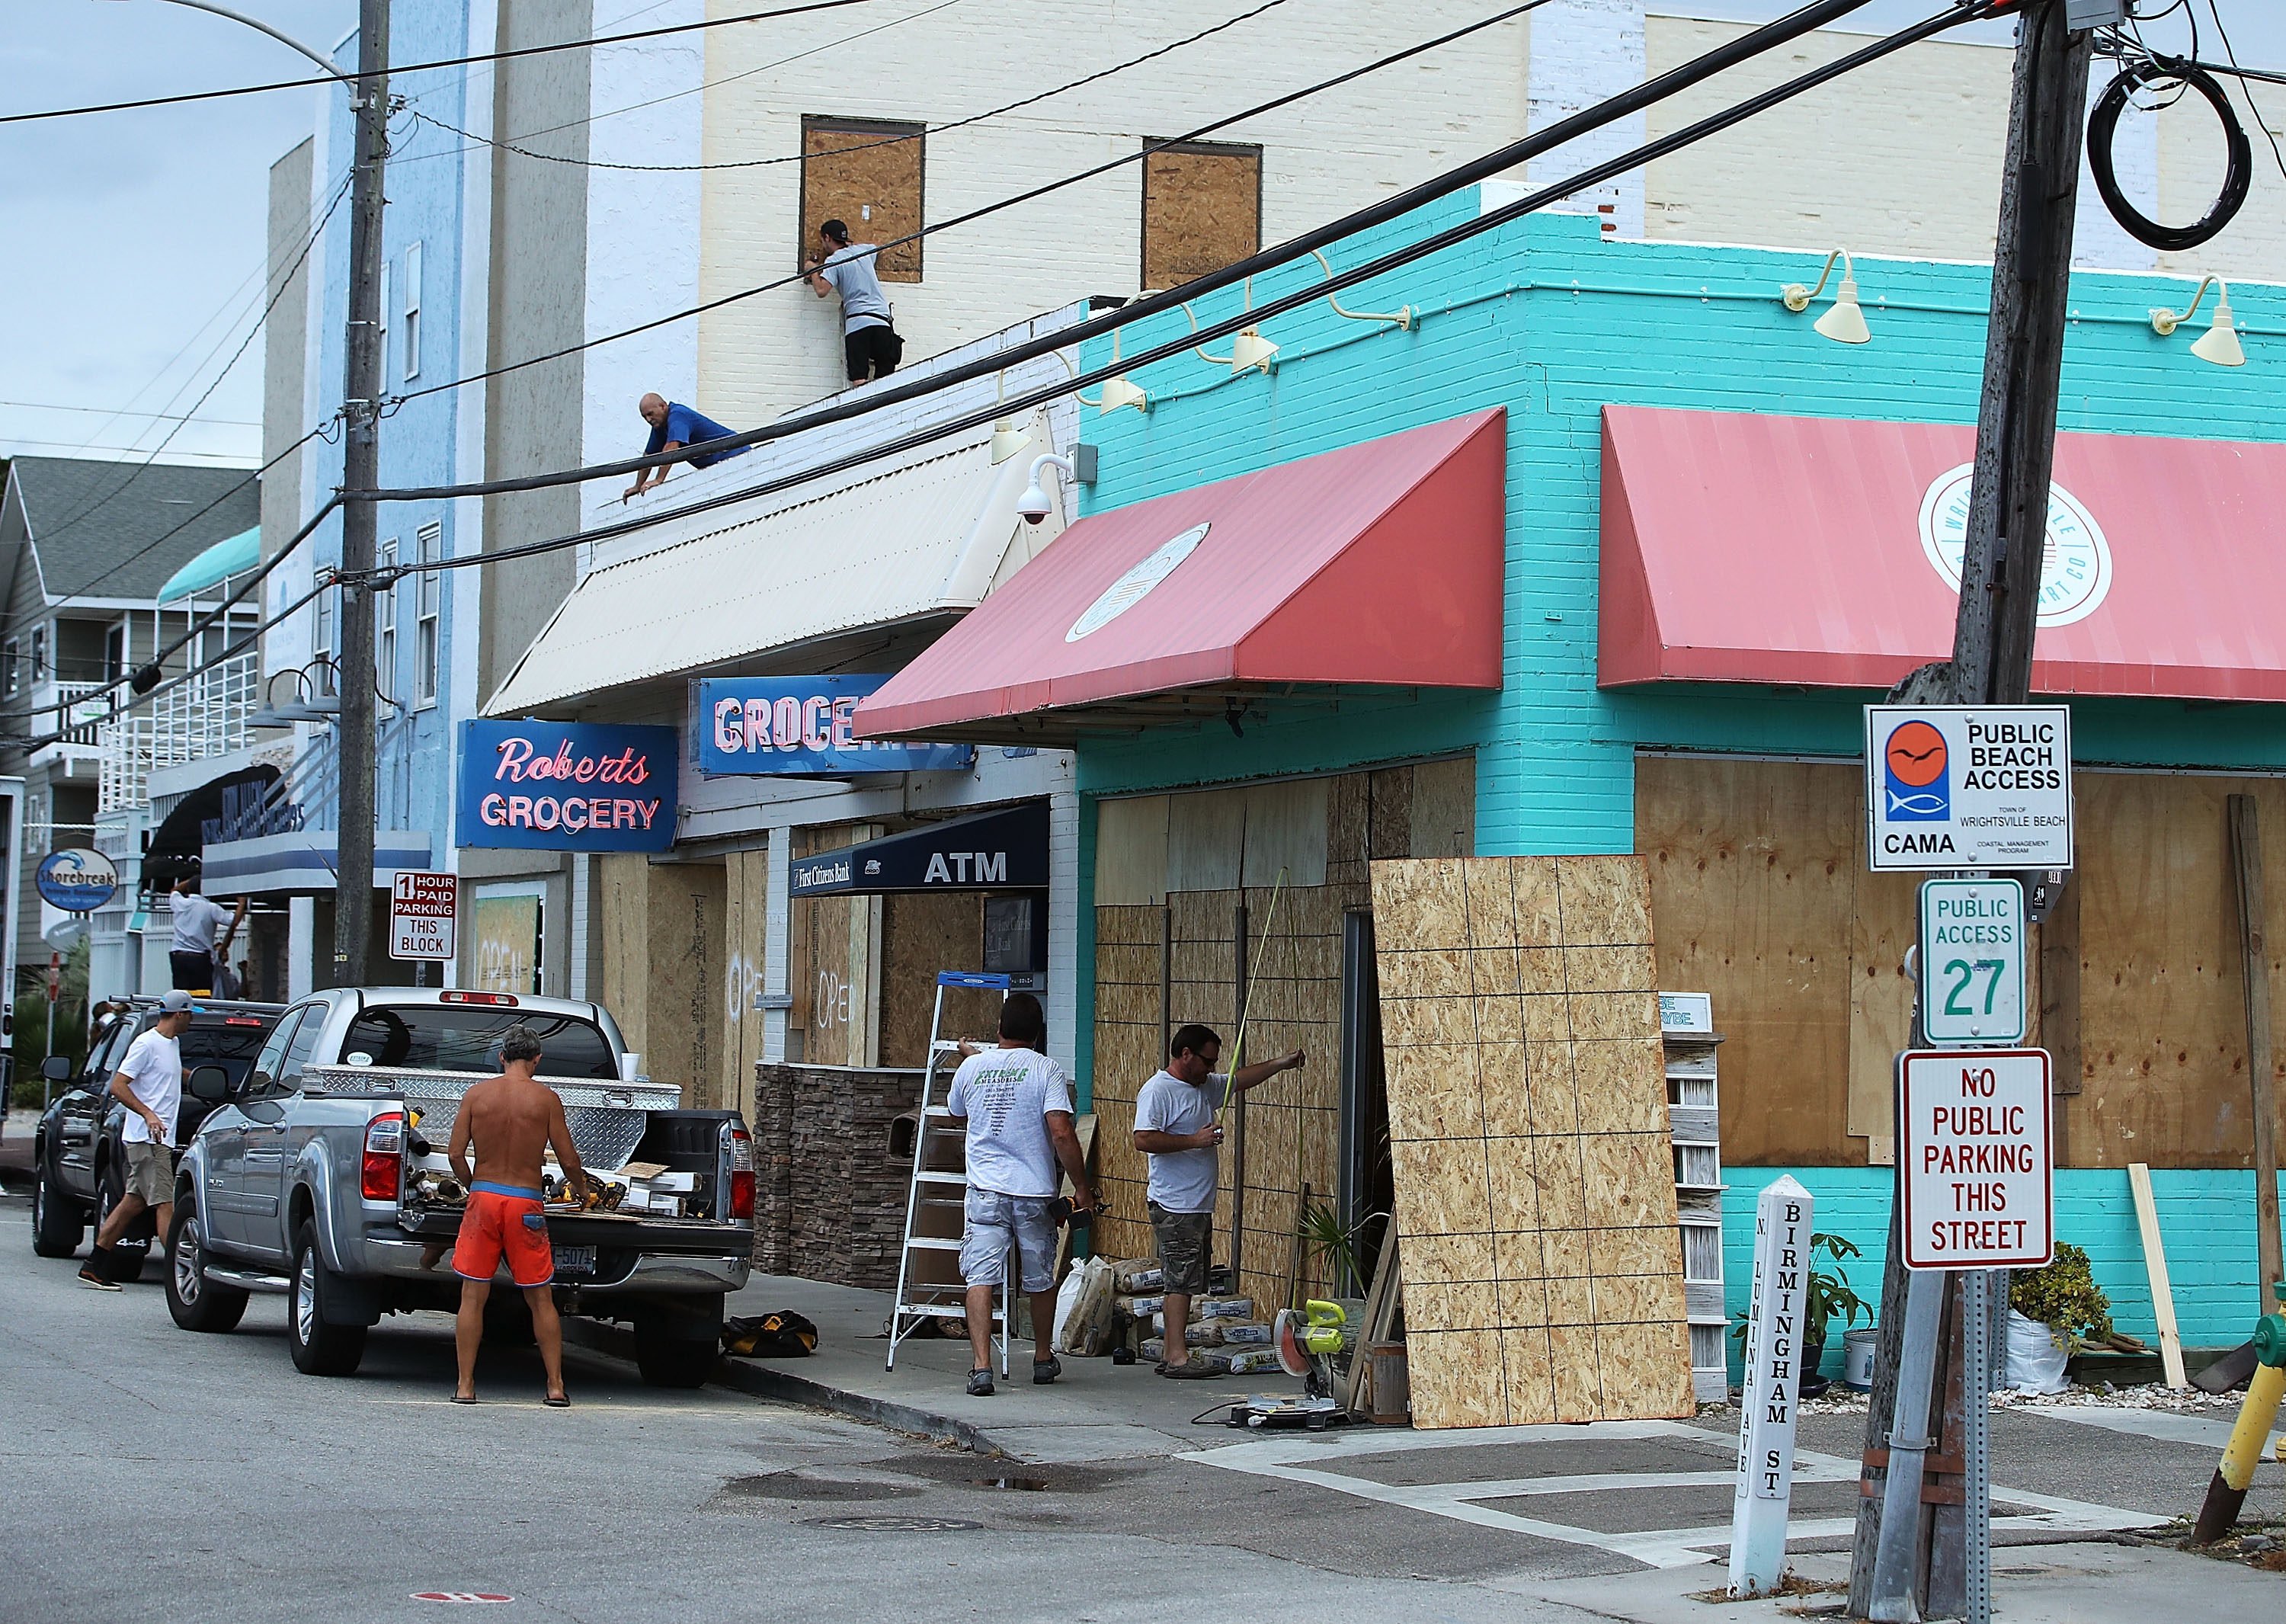 Workers board up shops while preparing for the arrival of Hurricane Florence on September 11, 2018 in Wrightsville Beach, United States. Hurricane Florence is expected on Friday possibly as a category 4 storm along the Virginia, North Carolina and South Carolina coastline.